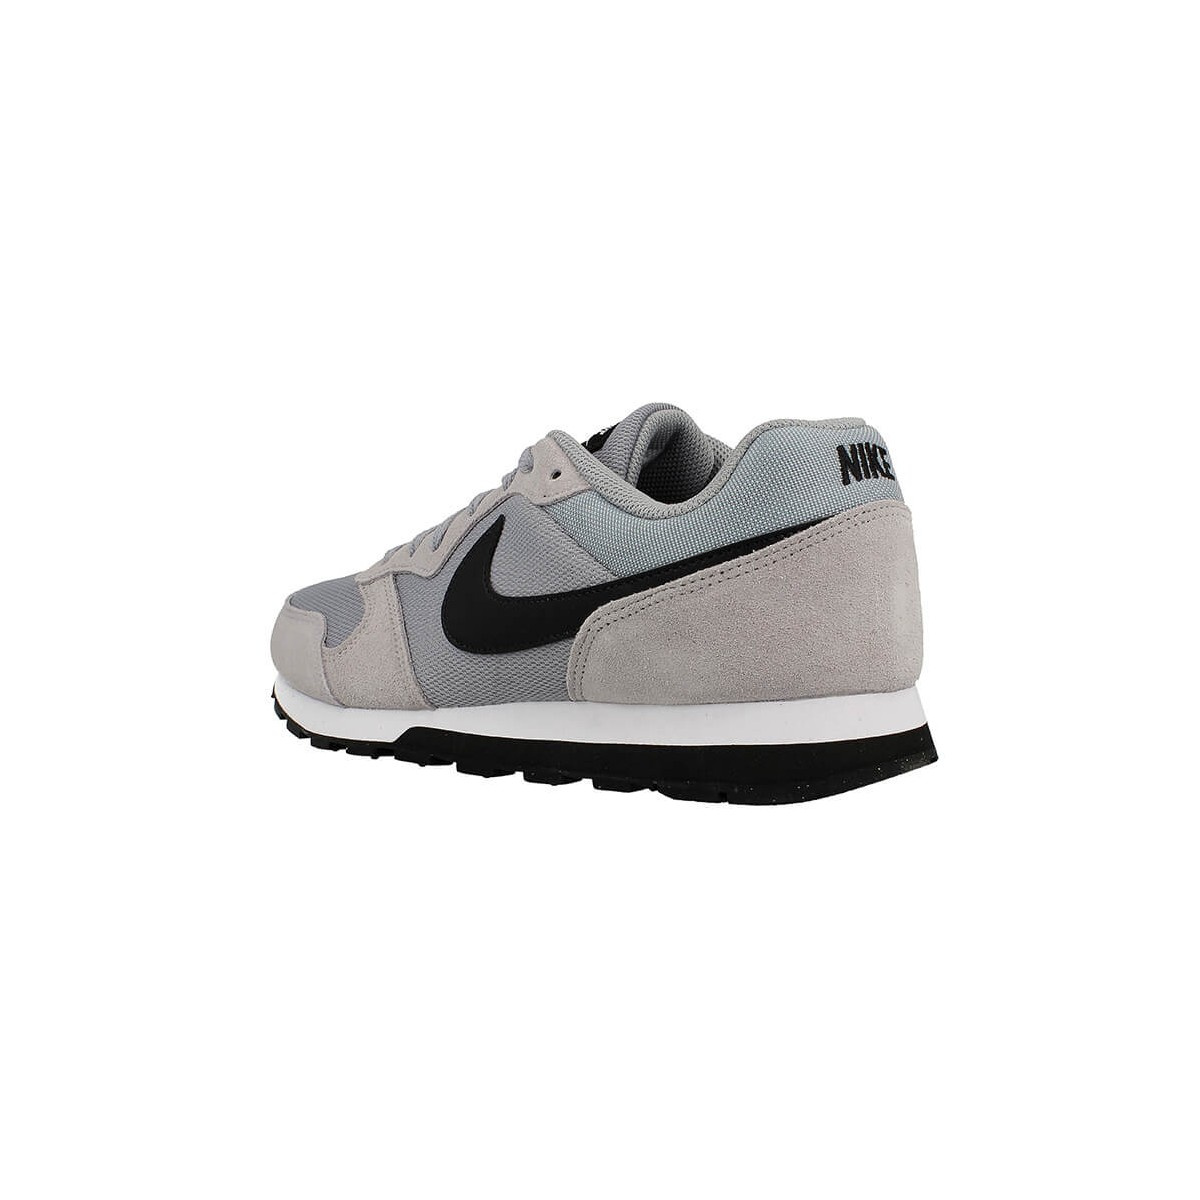 low priced 0e175 f780f ... Nike MD Runner 2 Zapatillas Hombre 749794 001 Grises ...